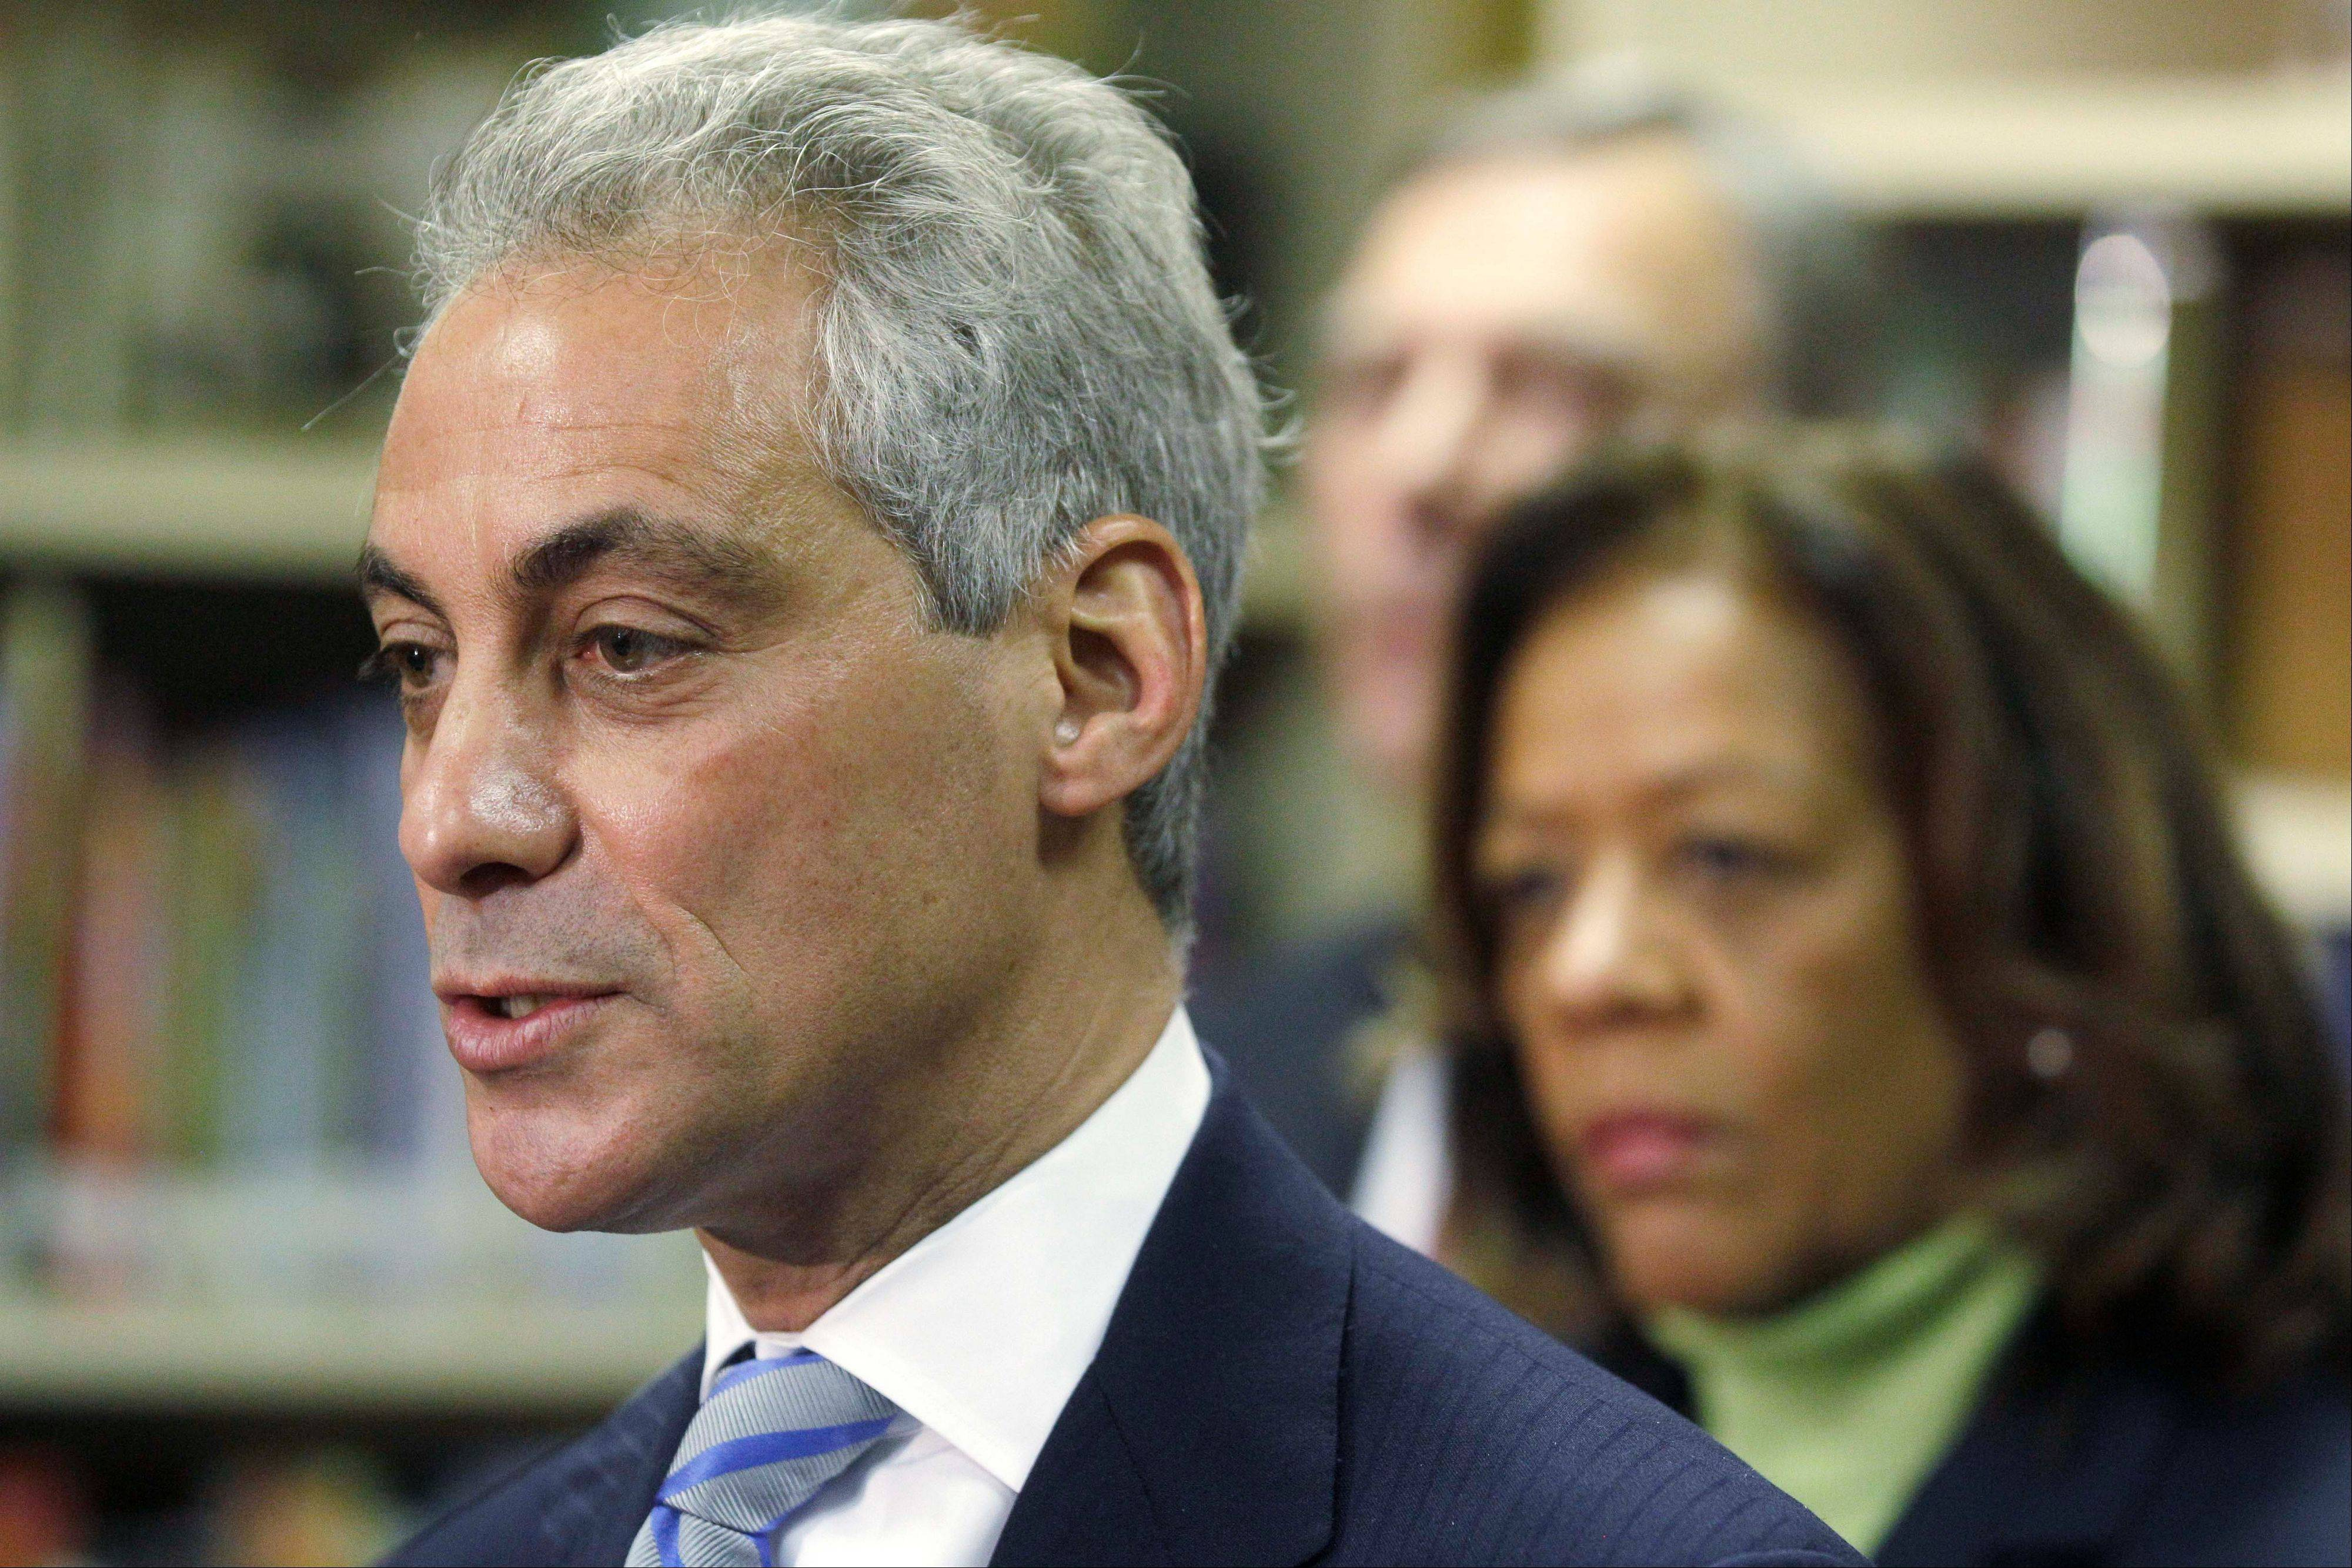 Chicago Mayor Rahm Emanuel introduces newly appointed Chicago Public Schools CEO Barbara Byrd-Bennett at a news conference Friday in Chicago.